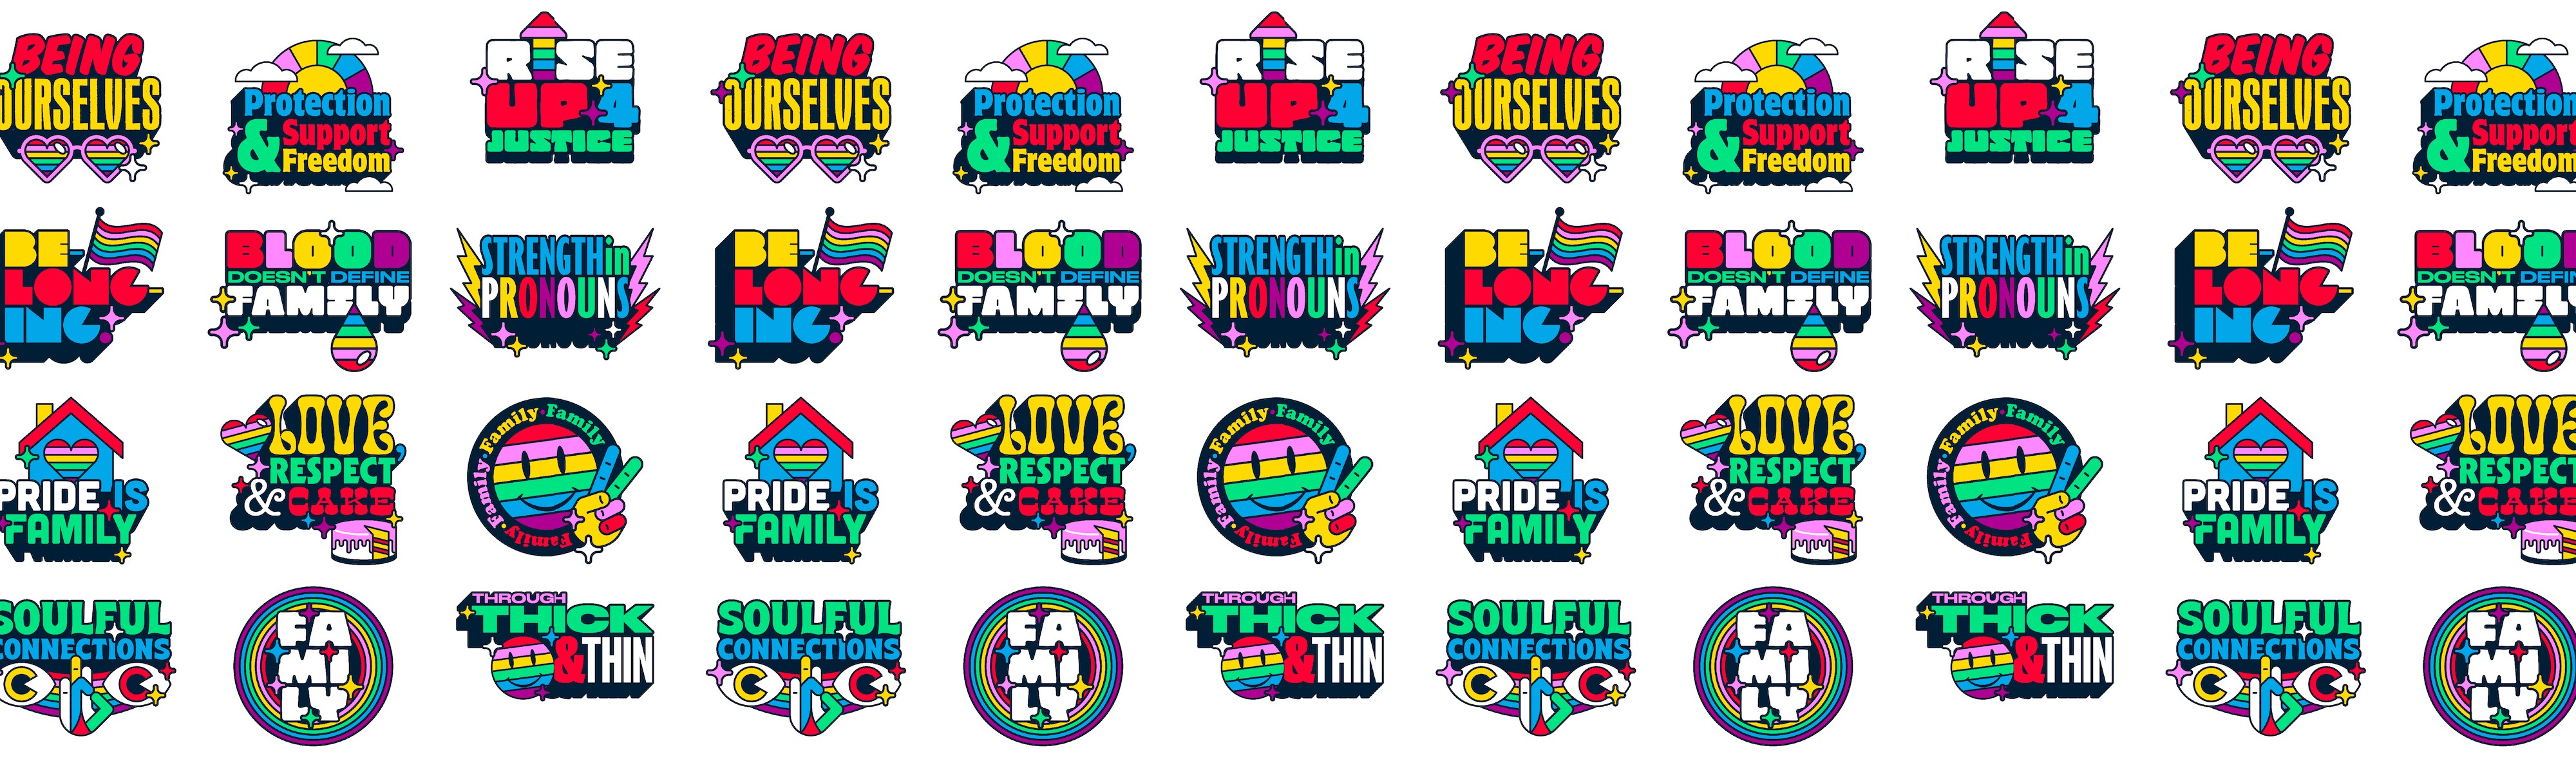 Pride family illustrated sticker pack as pattern for header image by weareinhouse.com